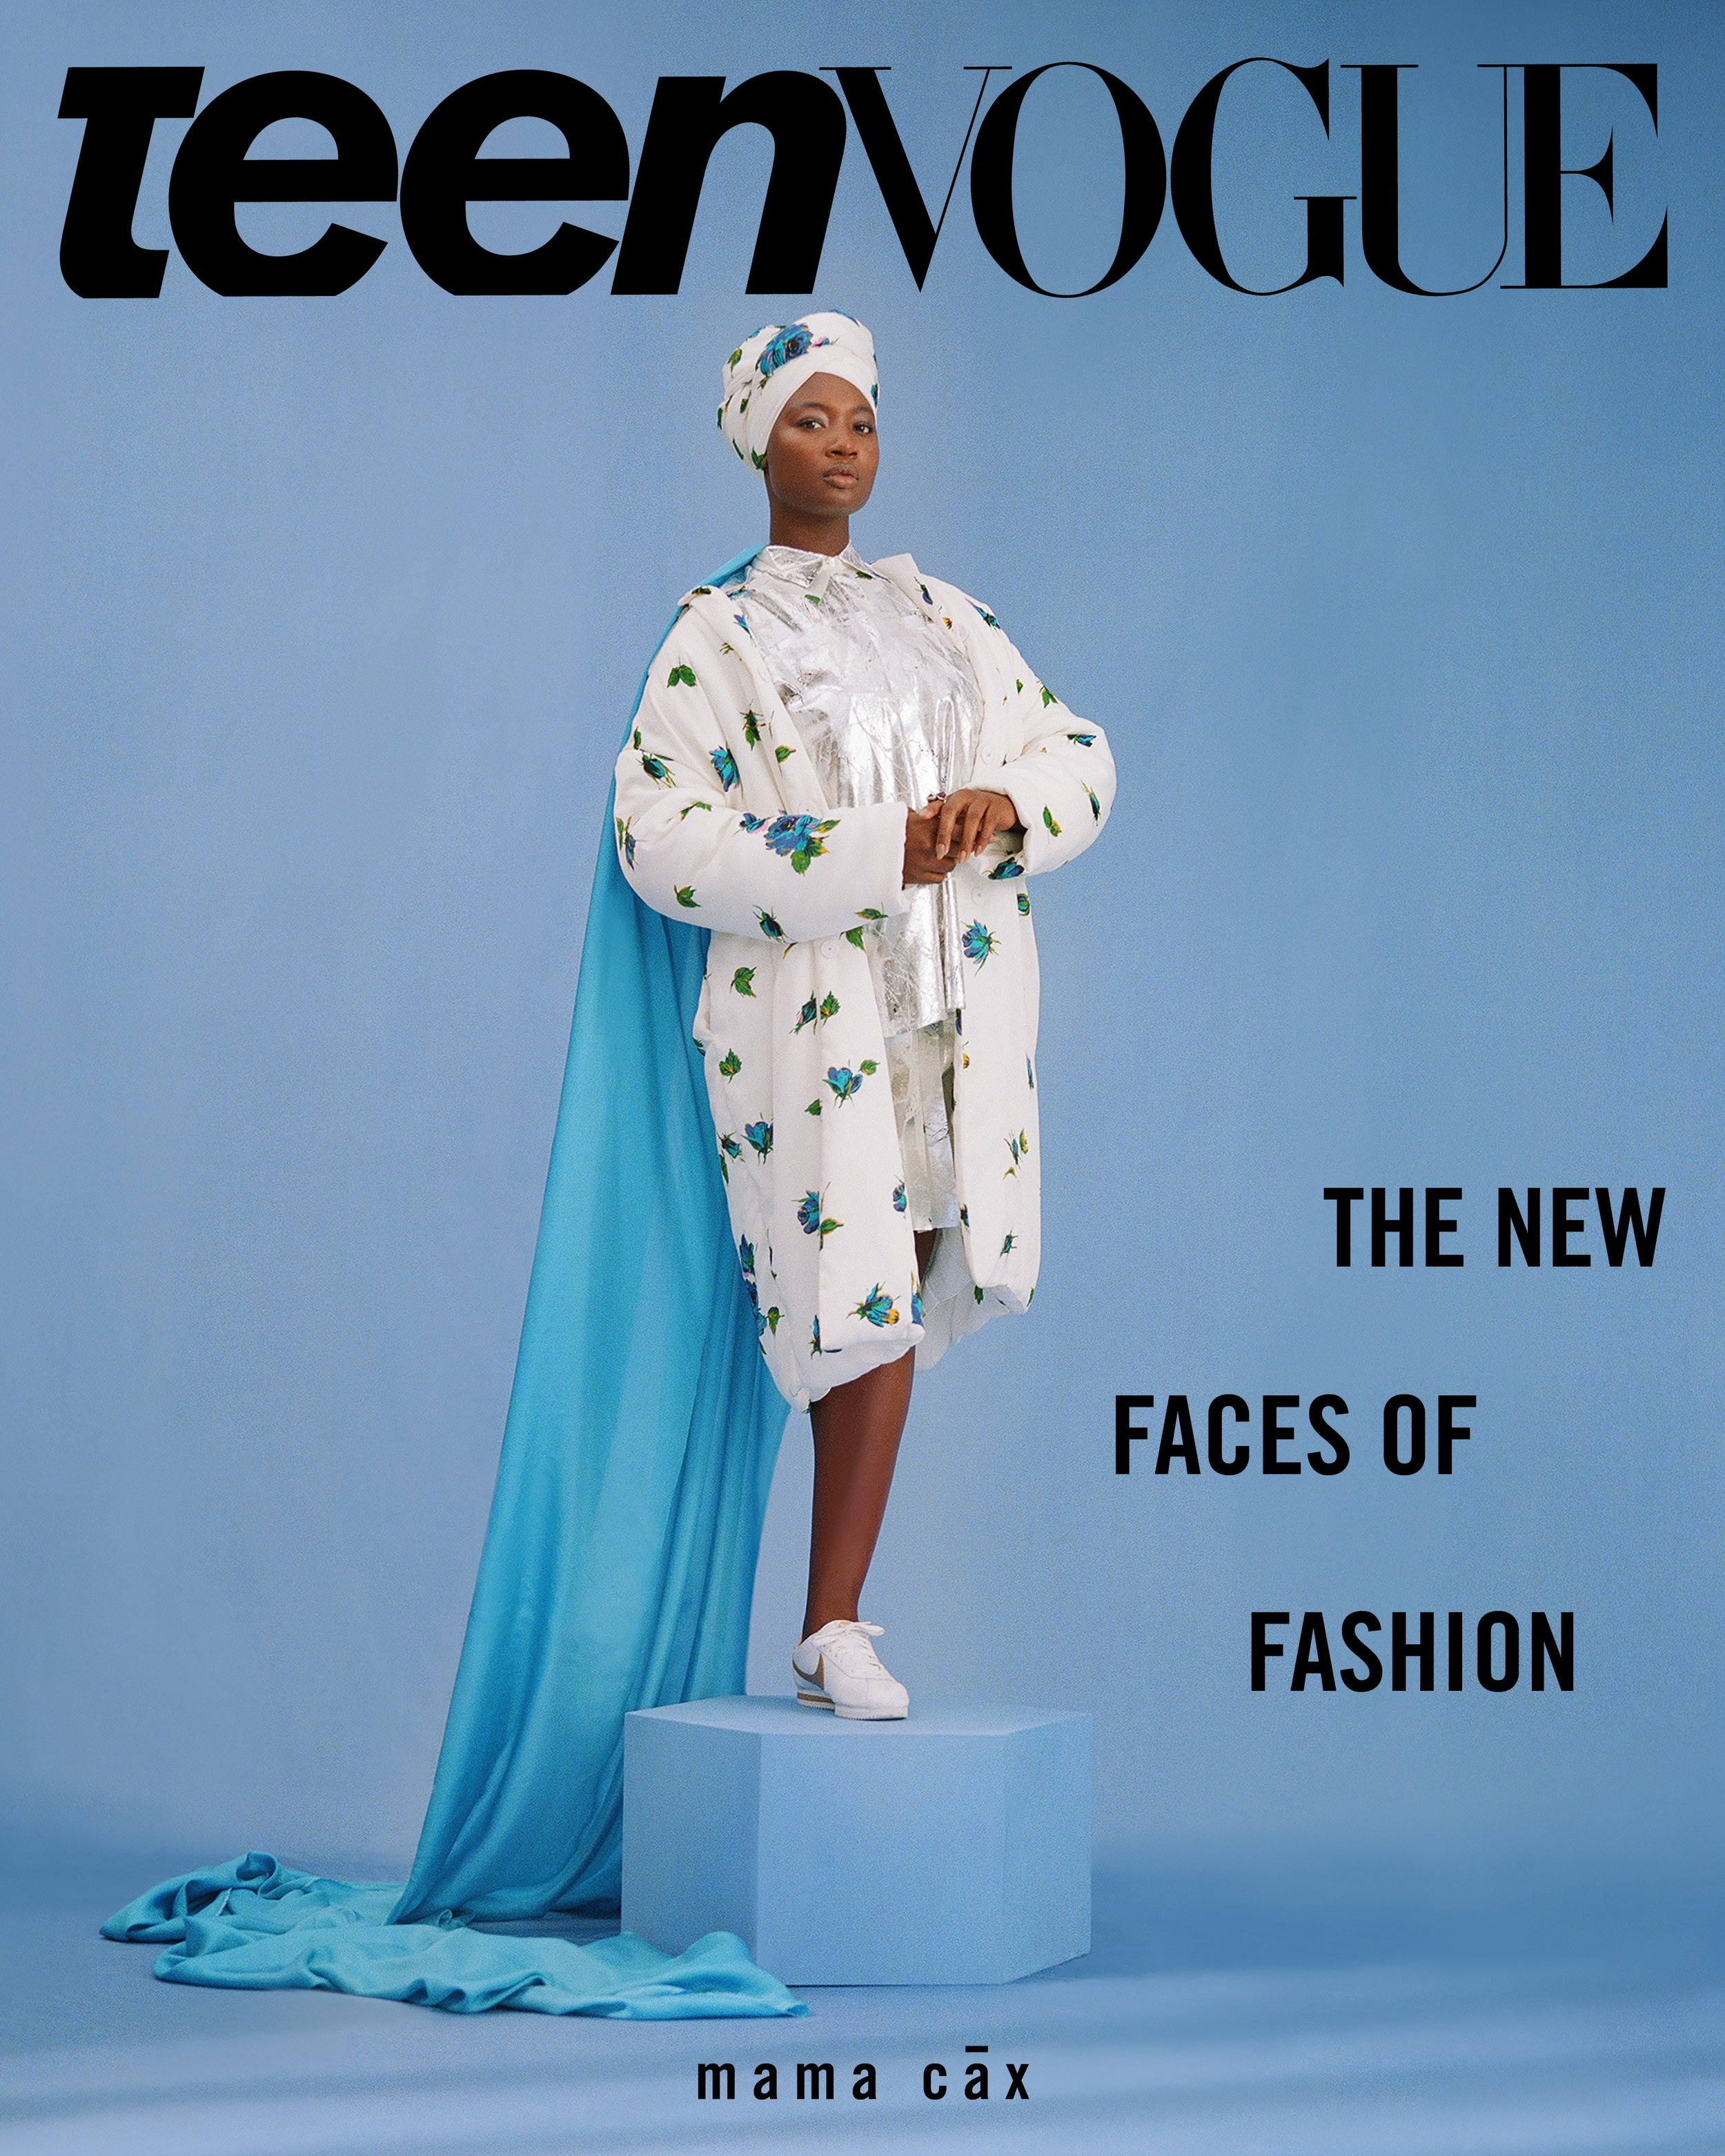 """Mama Cax was also featured in TeenVogue's September issue. In the cover she is wearing a white turban, a white floral jacket and has a large blue cape flowing behind her while she stands on a blue box. Behind her the caption reads: """"The New Faces of Fashion"""" - referring to the other models with disabilities that the magazine has featured in their September issue."""